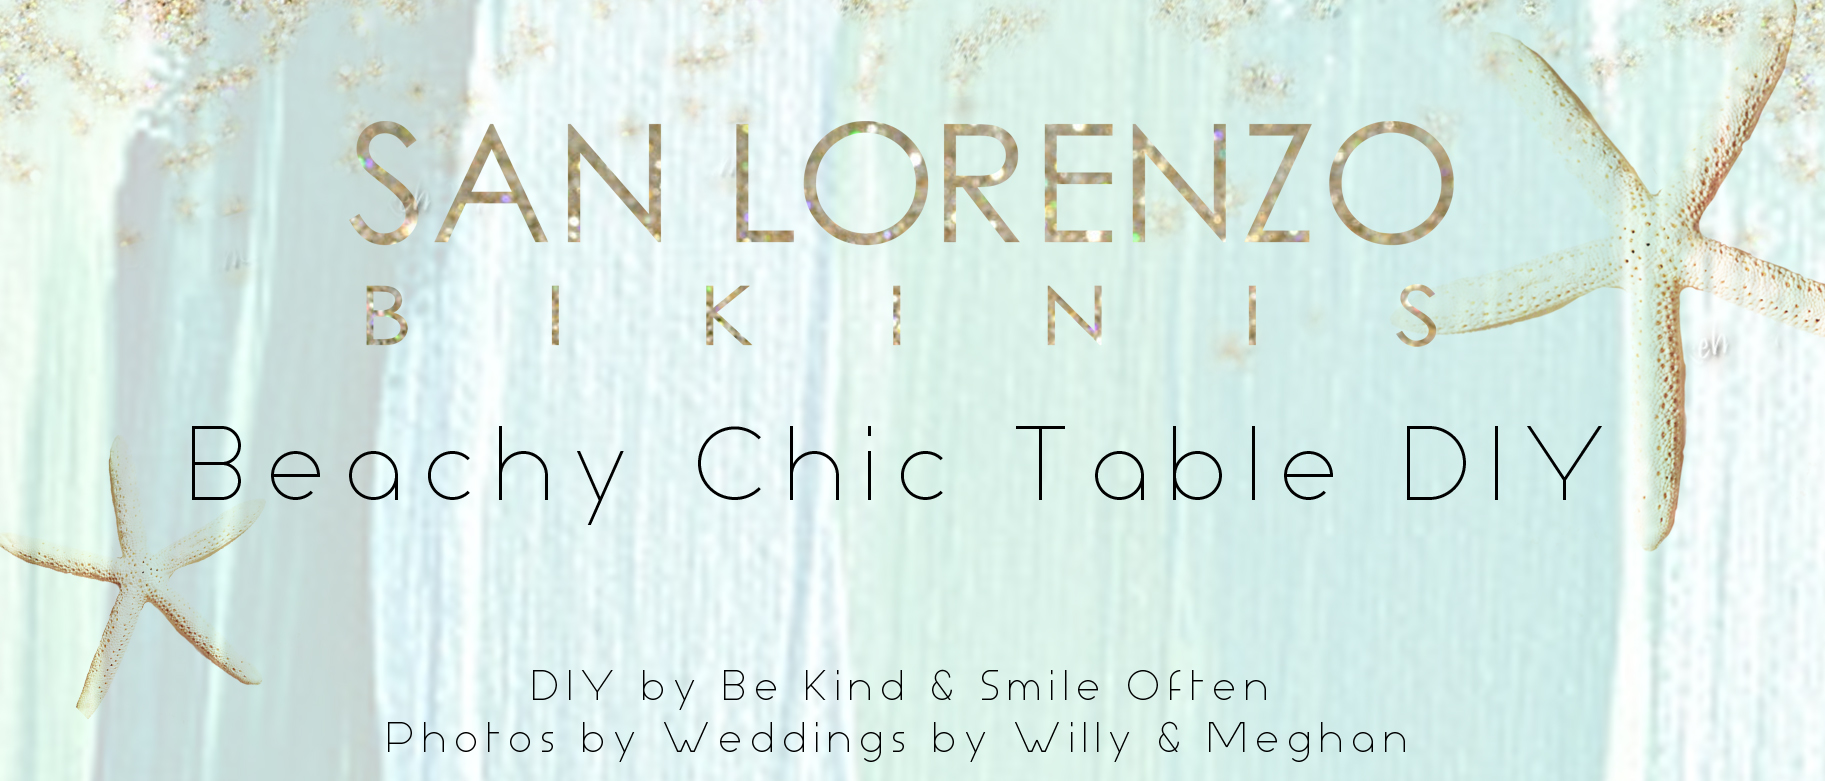 weddings-by-willy-and-meghan-rustic-beach-thanksgiving-table-1